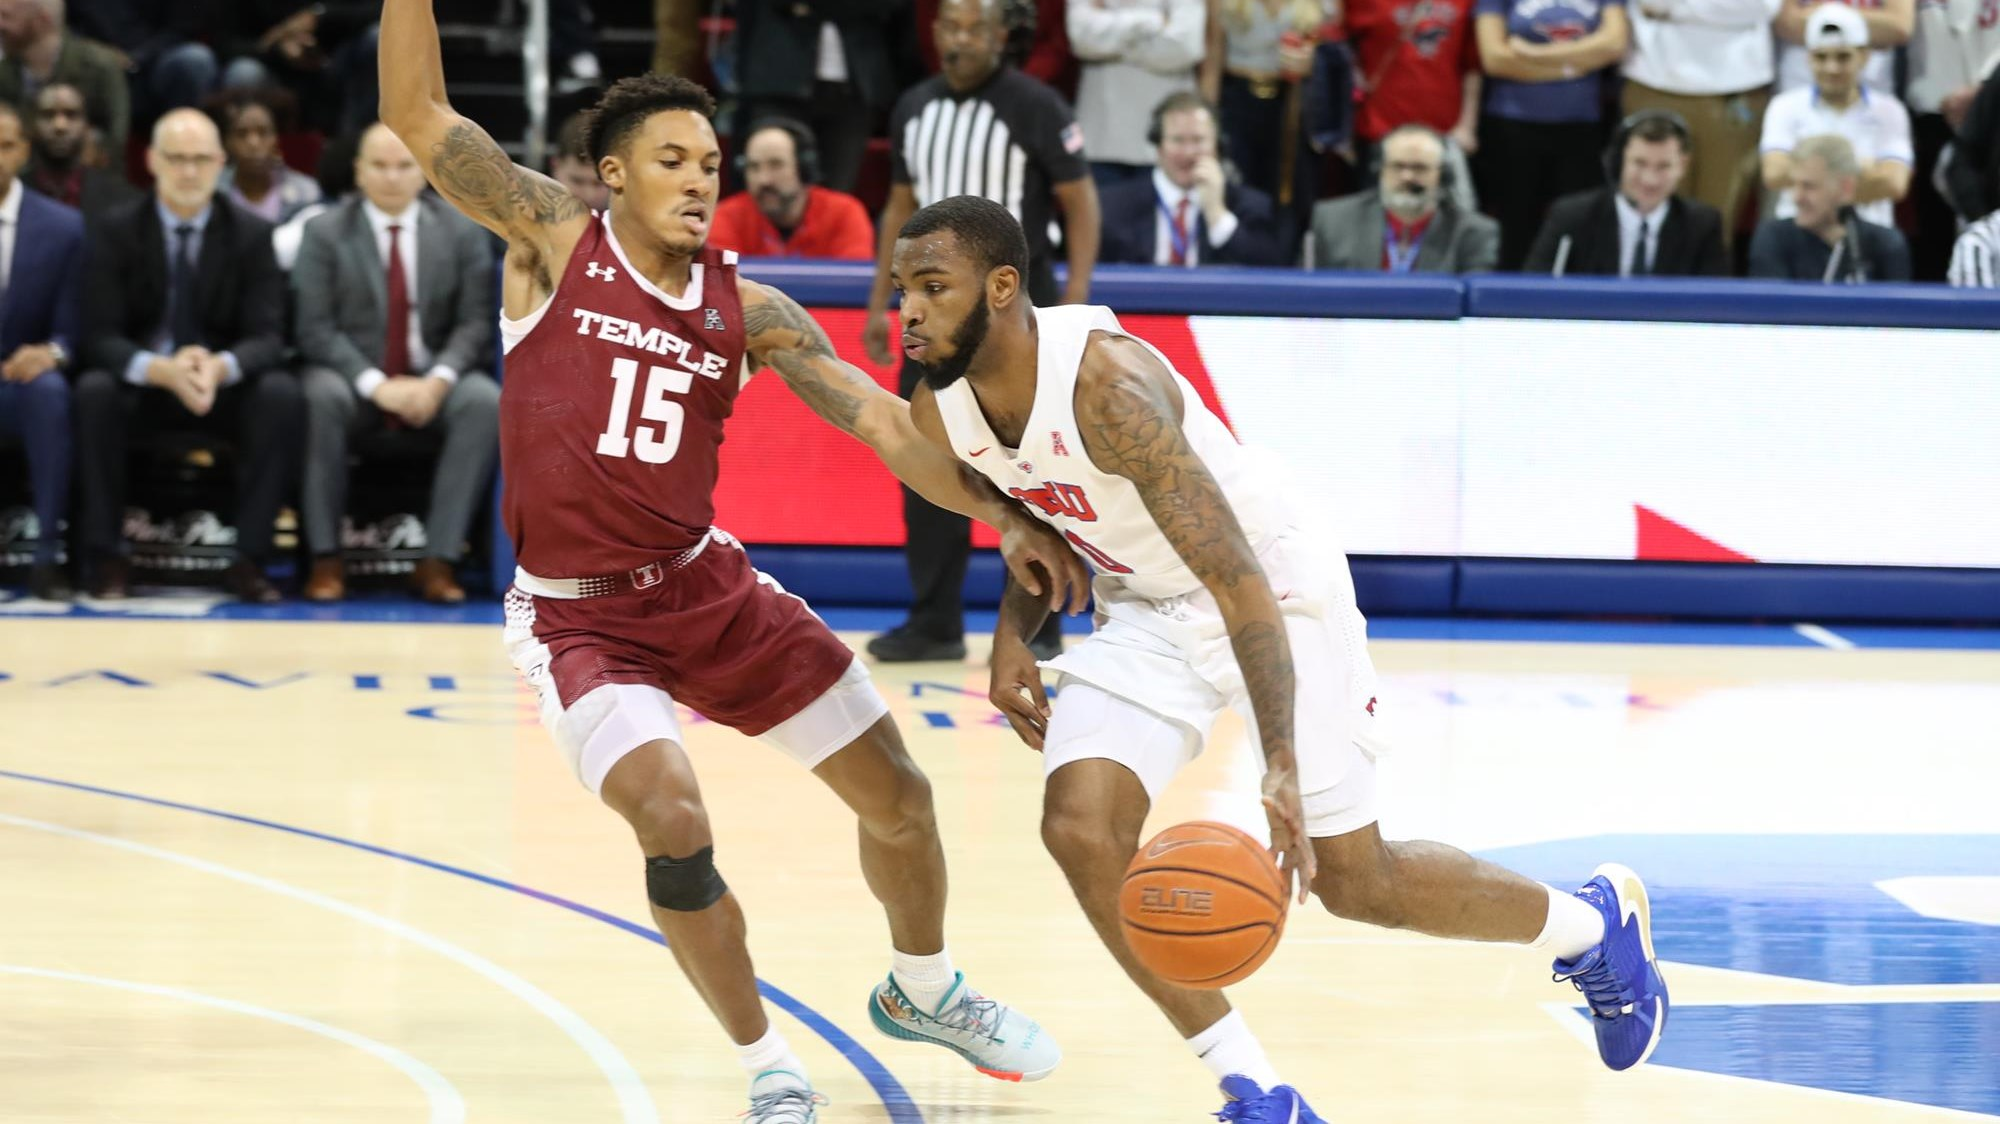 Image result for SMU vs Temple January 18